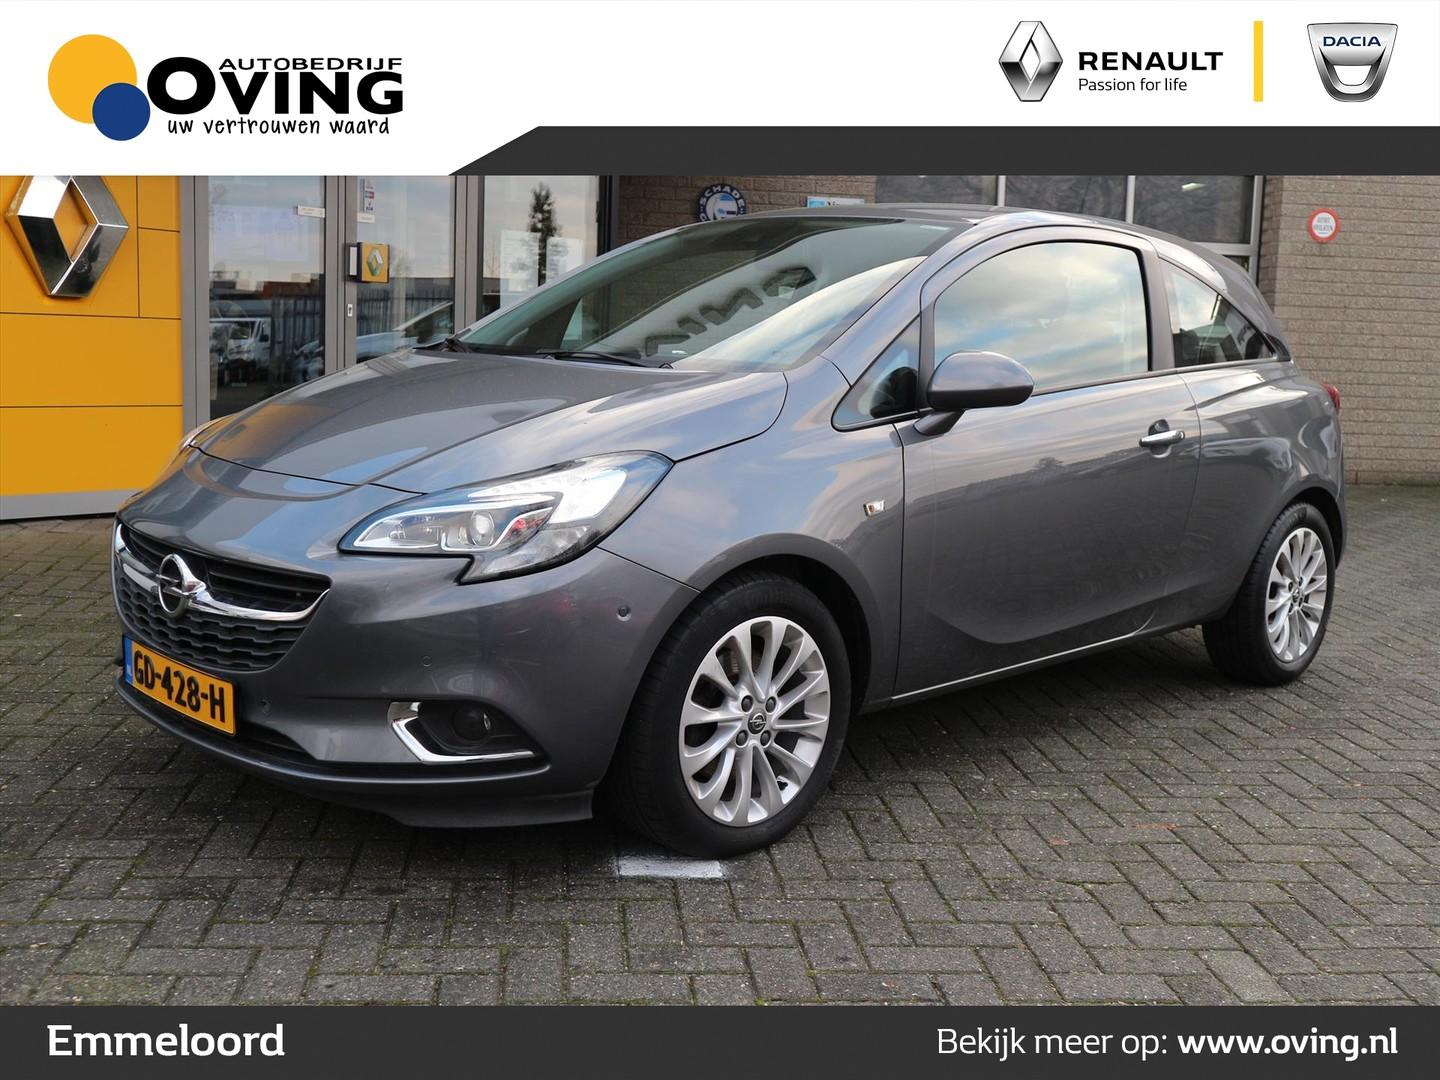 Opel Corsa 1.3 cdti easytronic 3.0 s&s 95pk cosmo 3drs. automaat